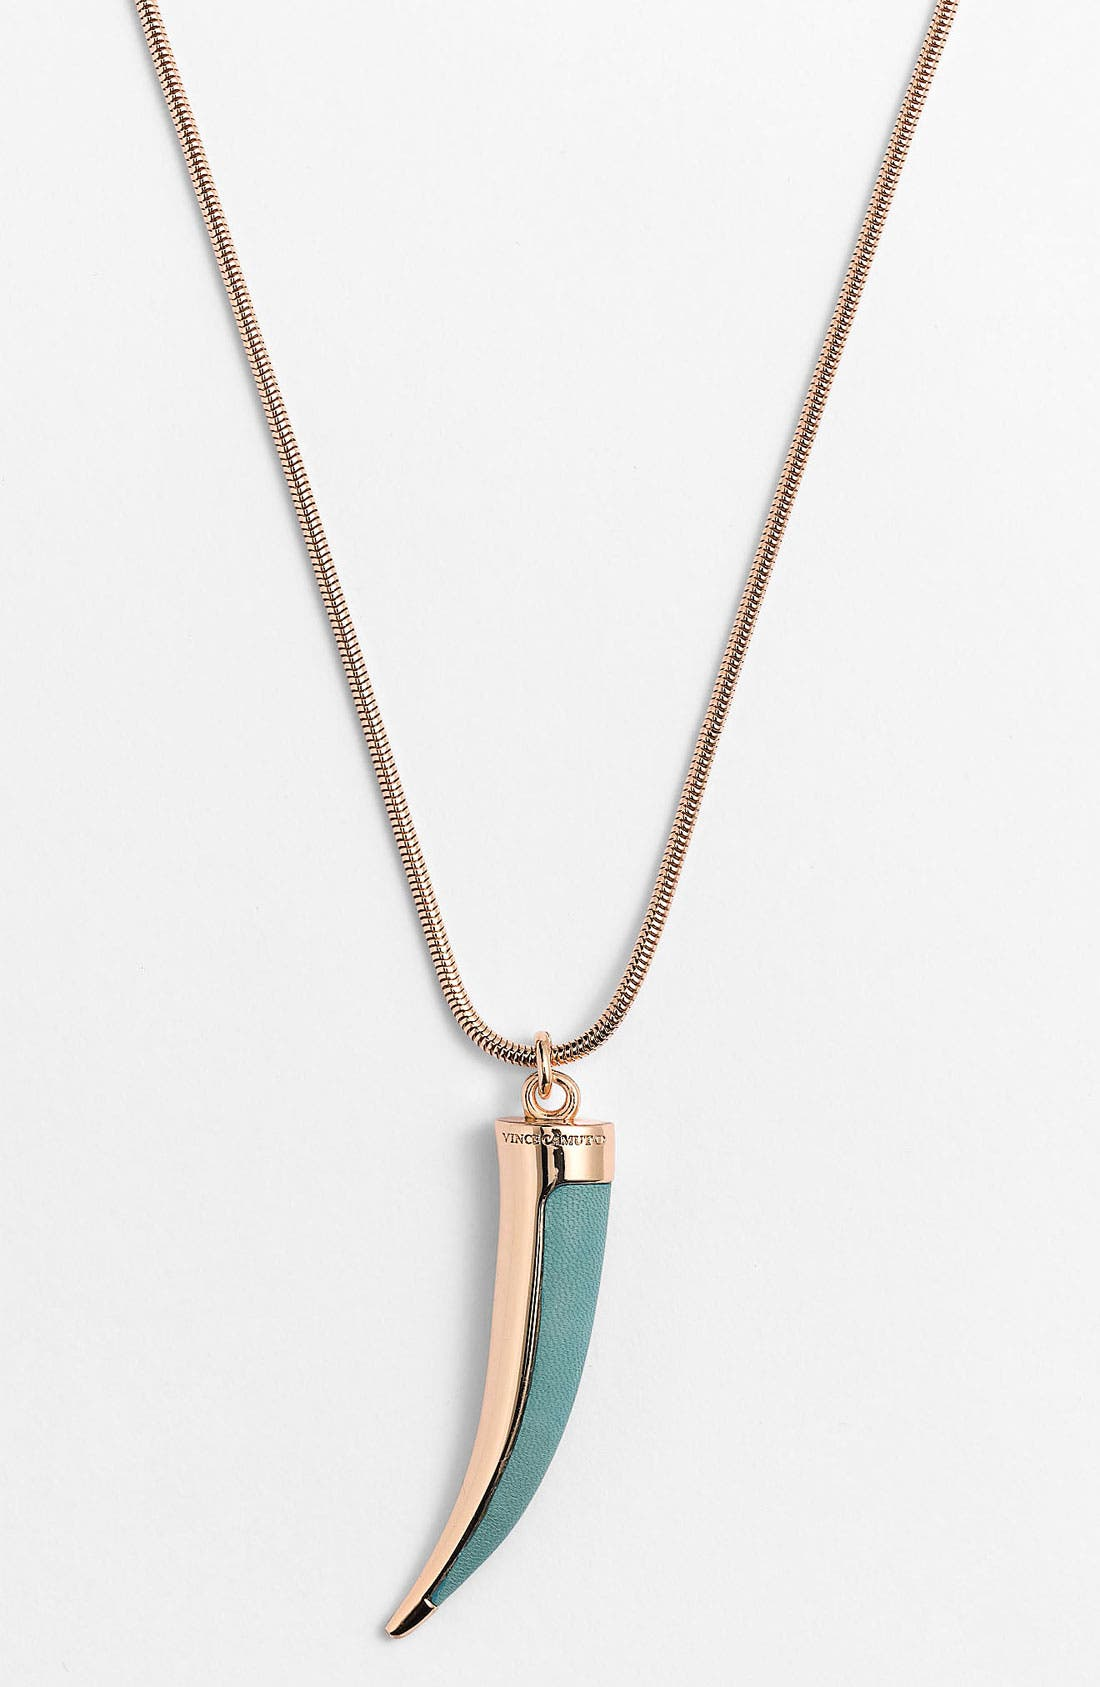 Alternate Image 1 Selected - Vince Camuto Pendant Necklace